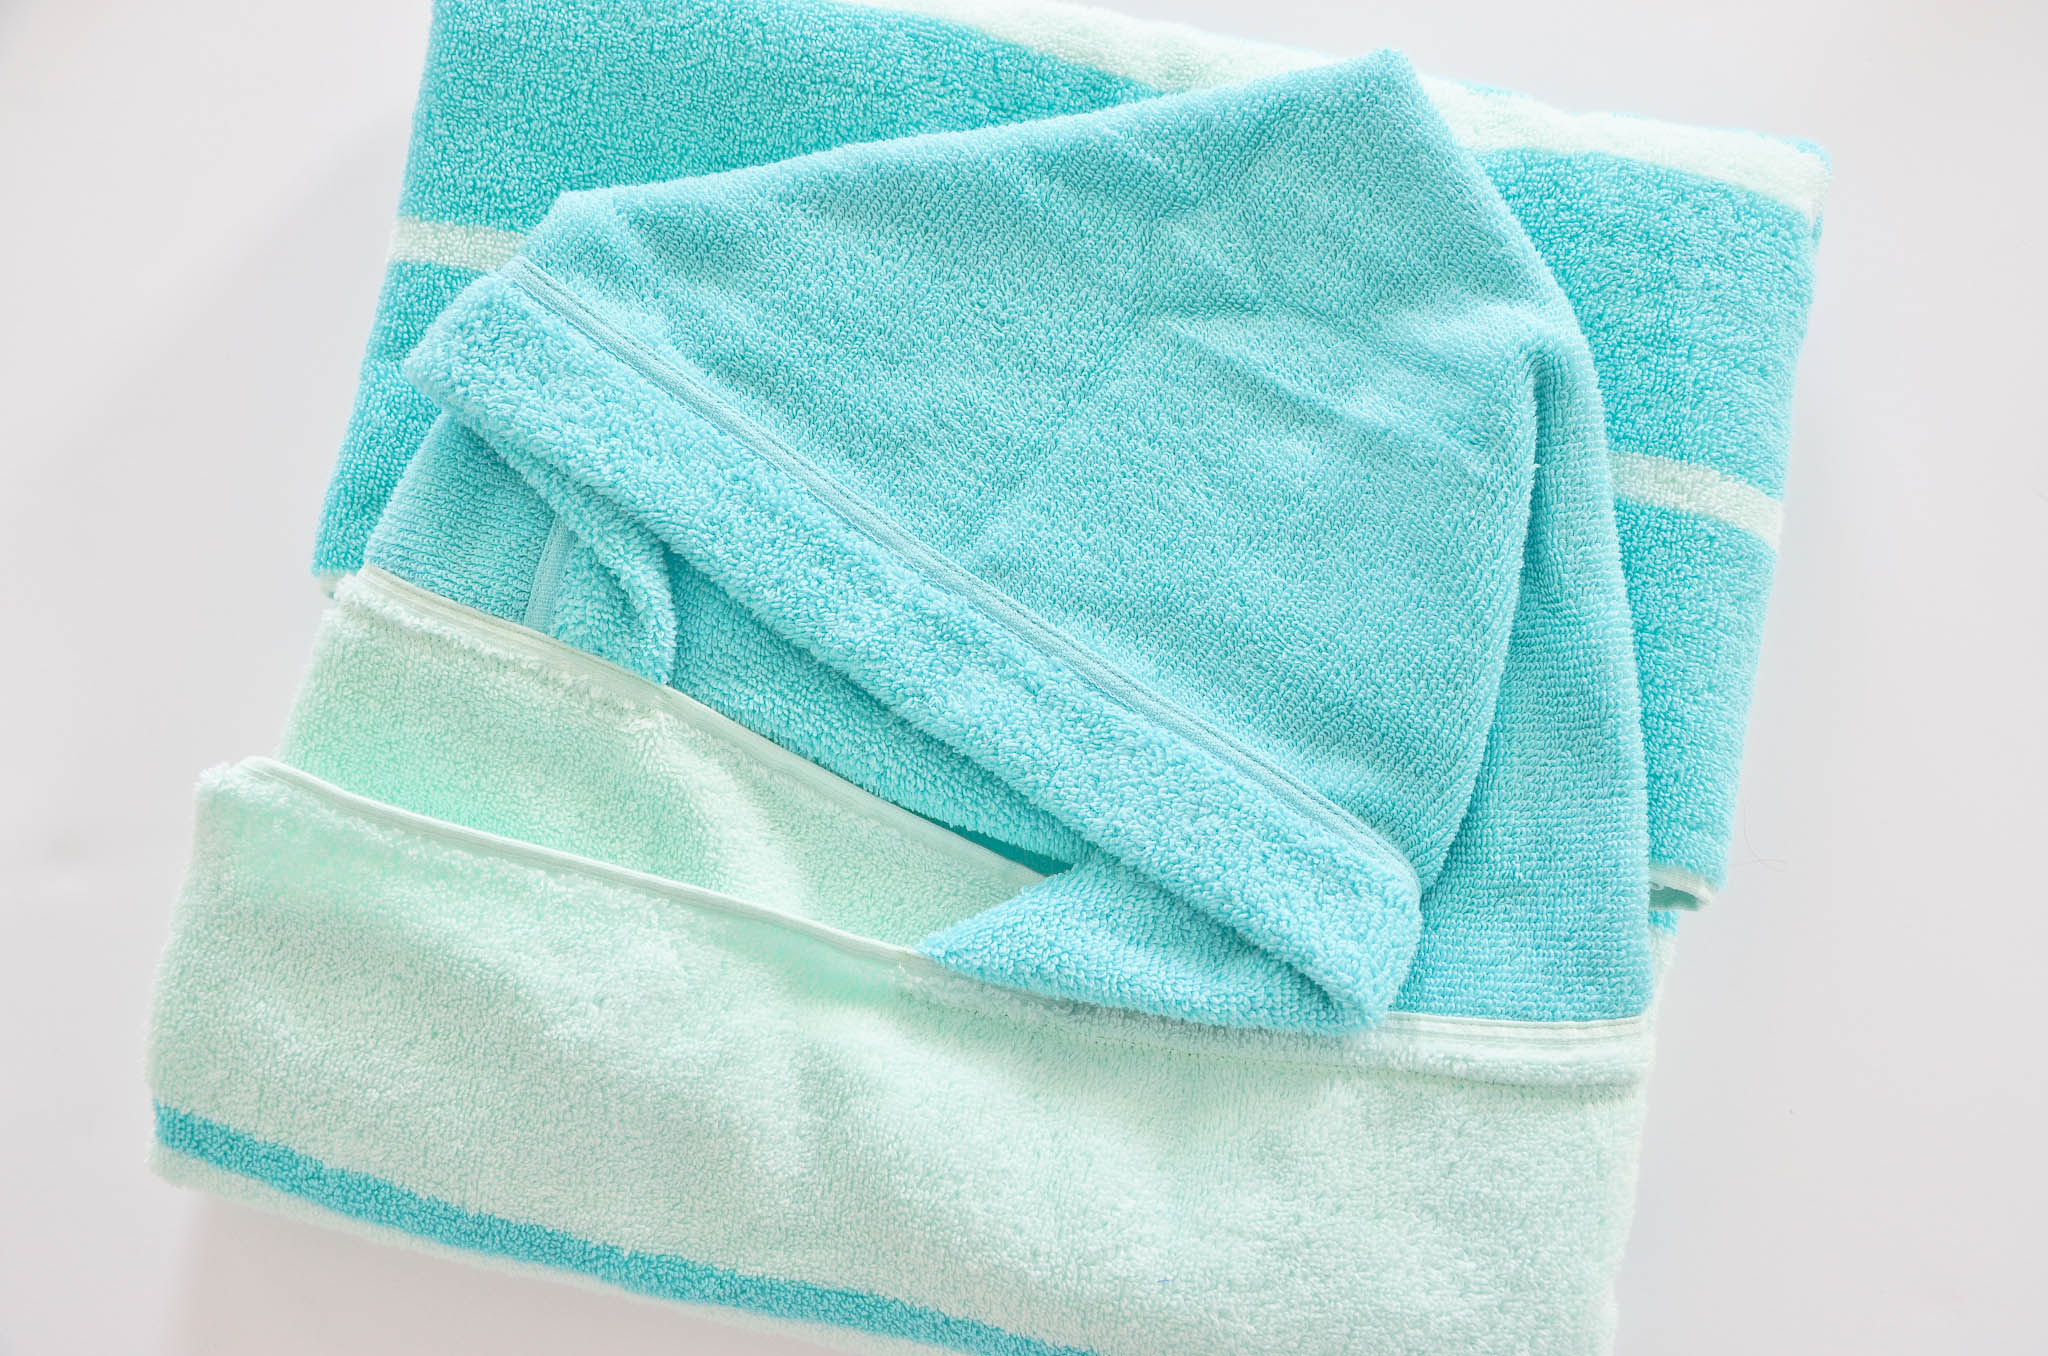 A DIY Hooded Towel that Your Kiddo Won't Immediately Outgrow